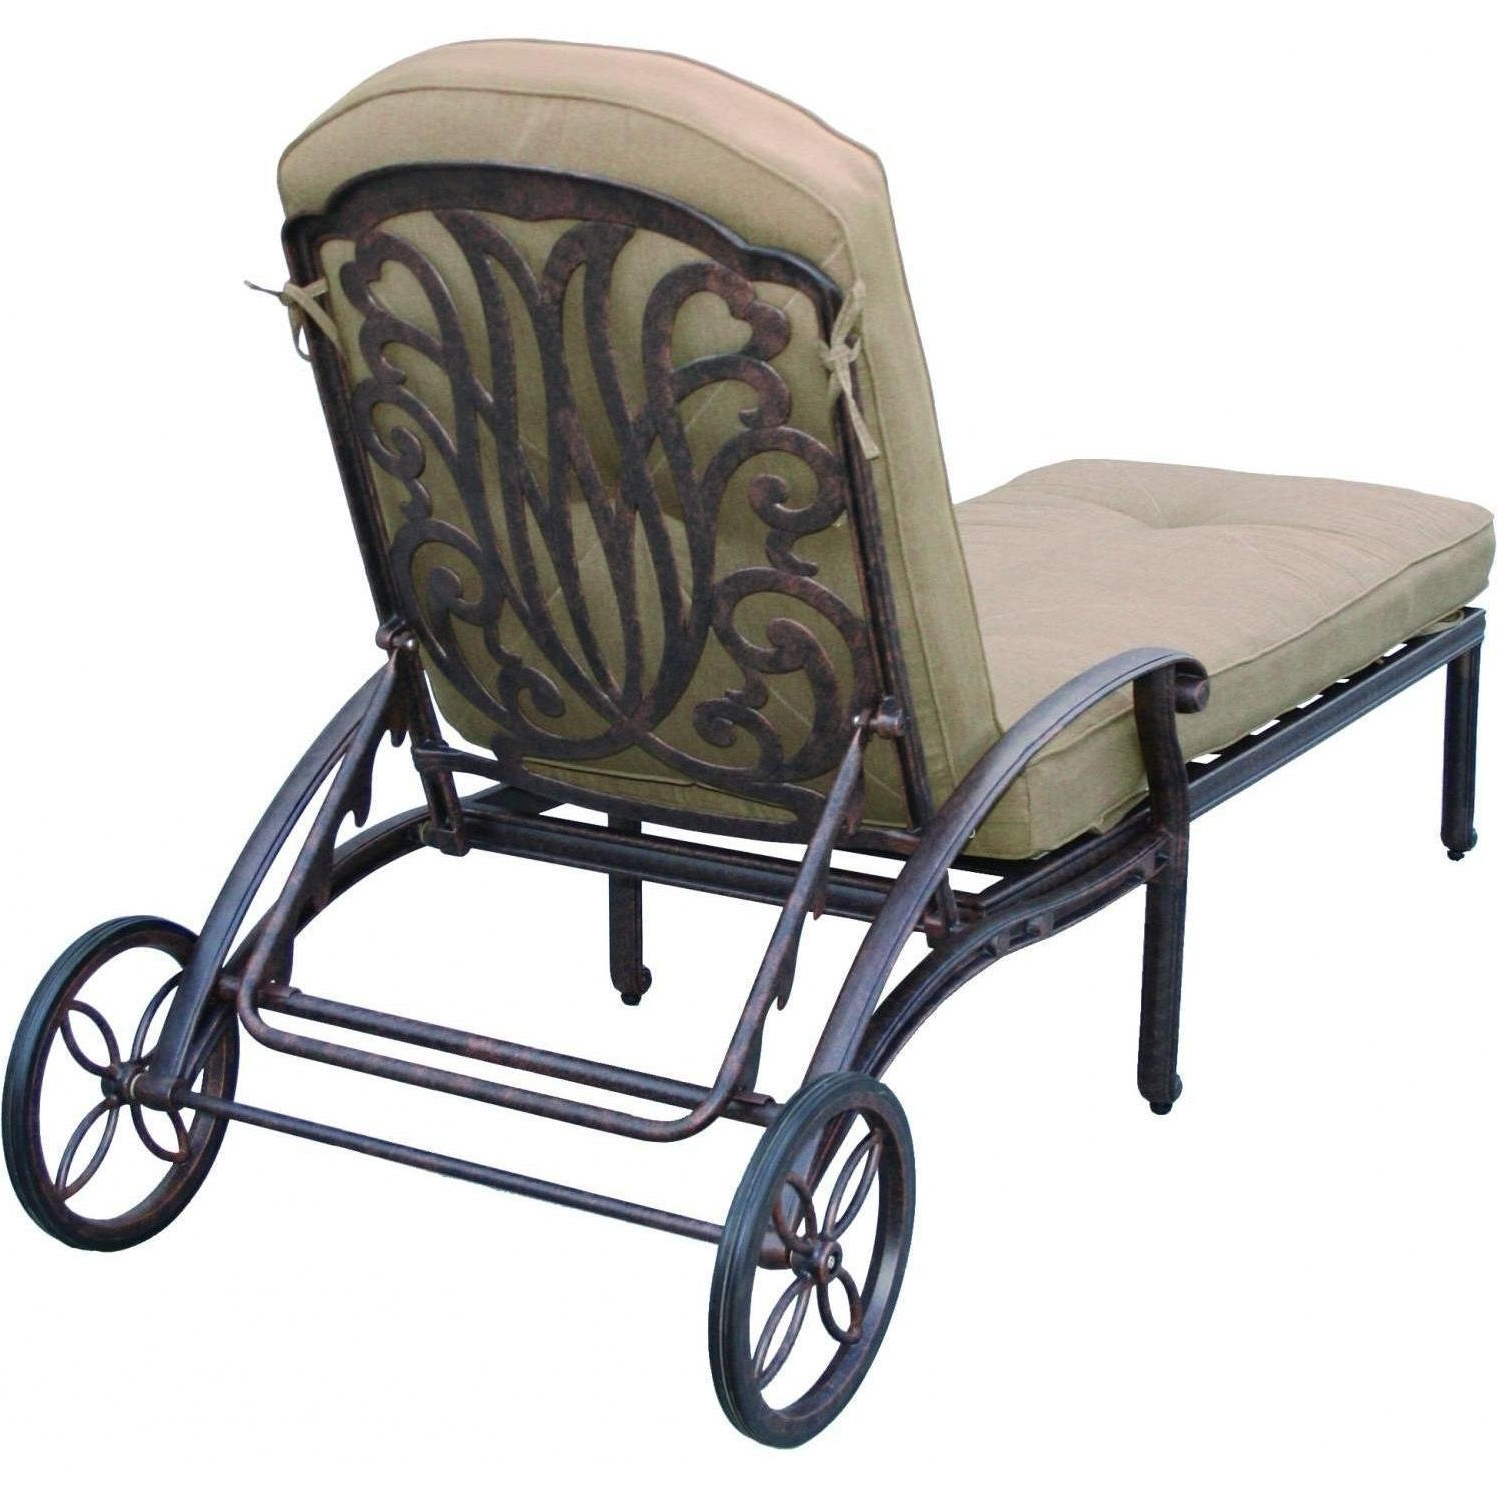 bottega chair lounge aluminum view furniture bolounge chaise cast side poolside the chaises patented handmade outdoor